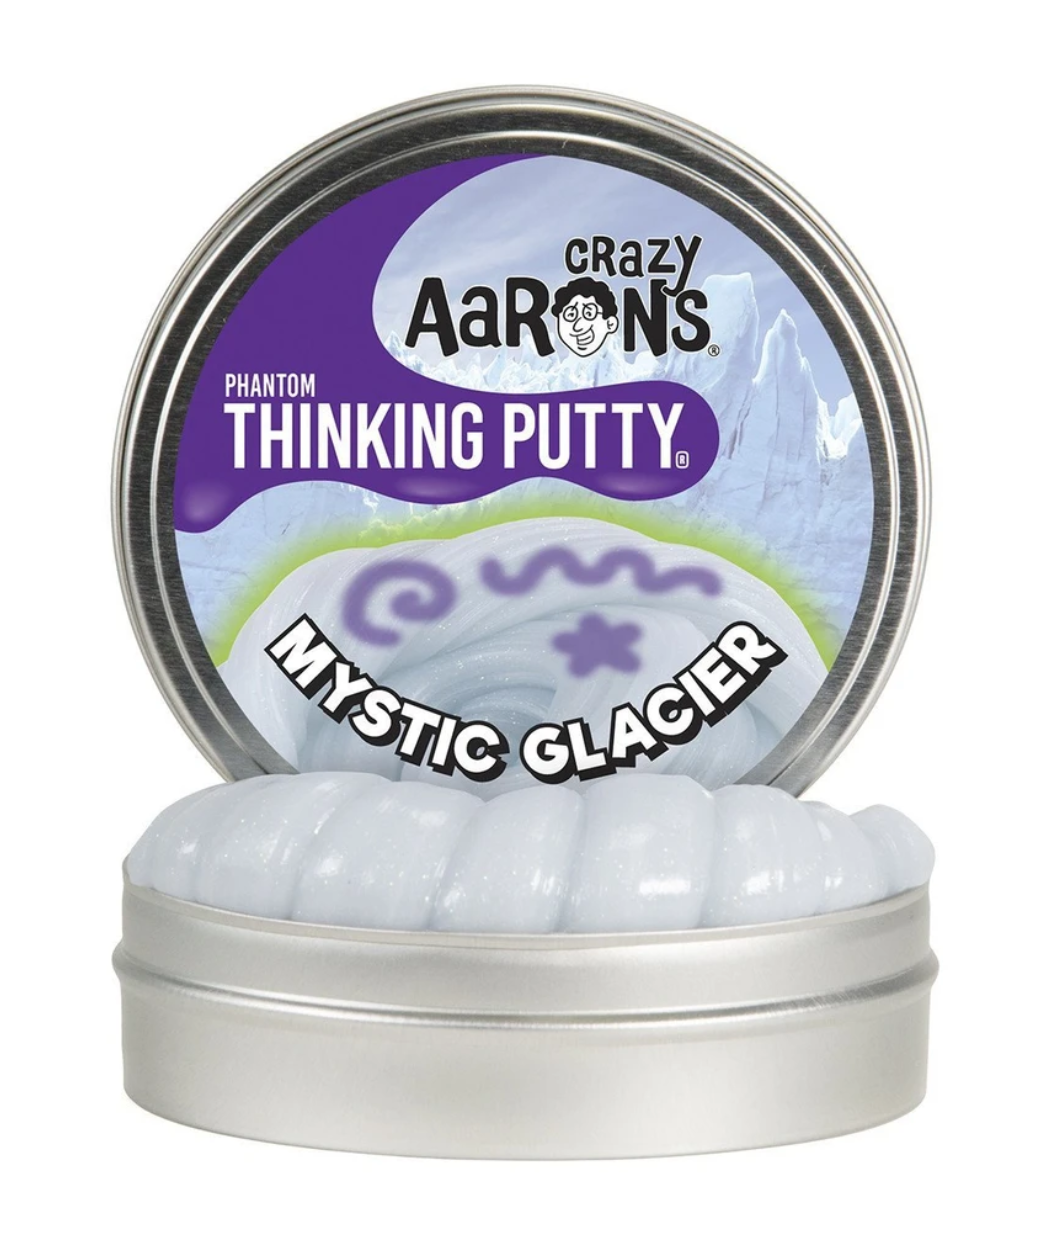 crazy aarons thinking putty  poppable tearable firm texture non-toxic silicon never dries out mystic glacier glow putty glows purple white phantom